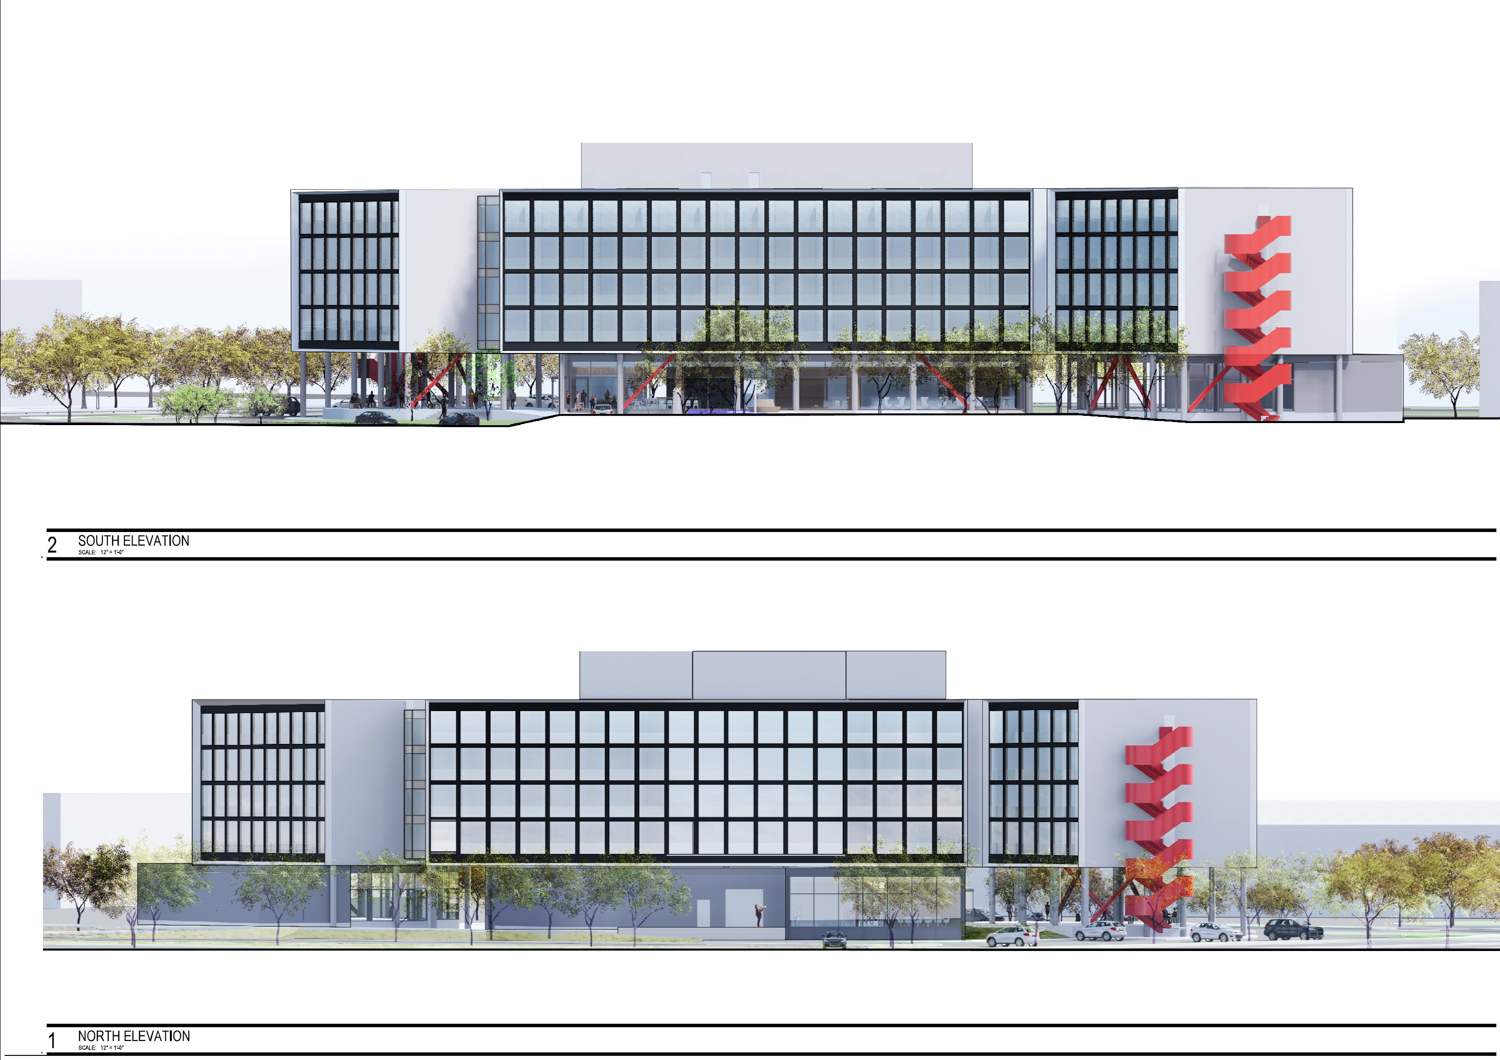 CitizenM Hotel at 3 Facebook Way street north and south face elevations, design by Gensler